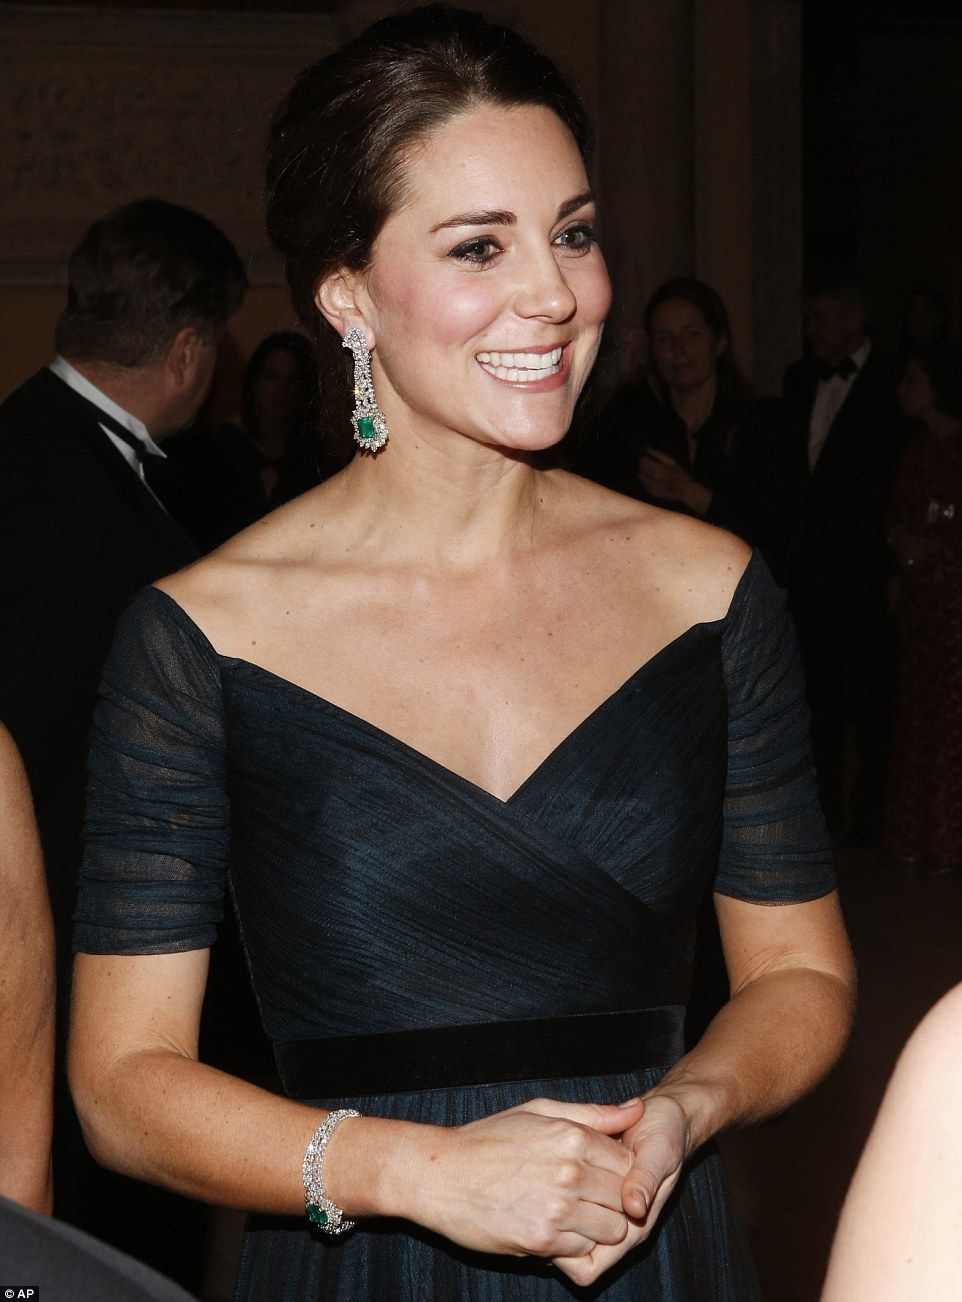 Kate and Wills attend University of St Andrews anniversary dinner